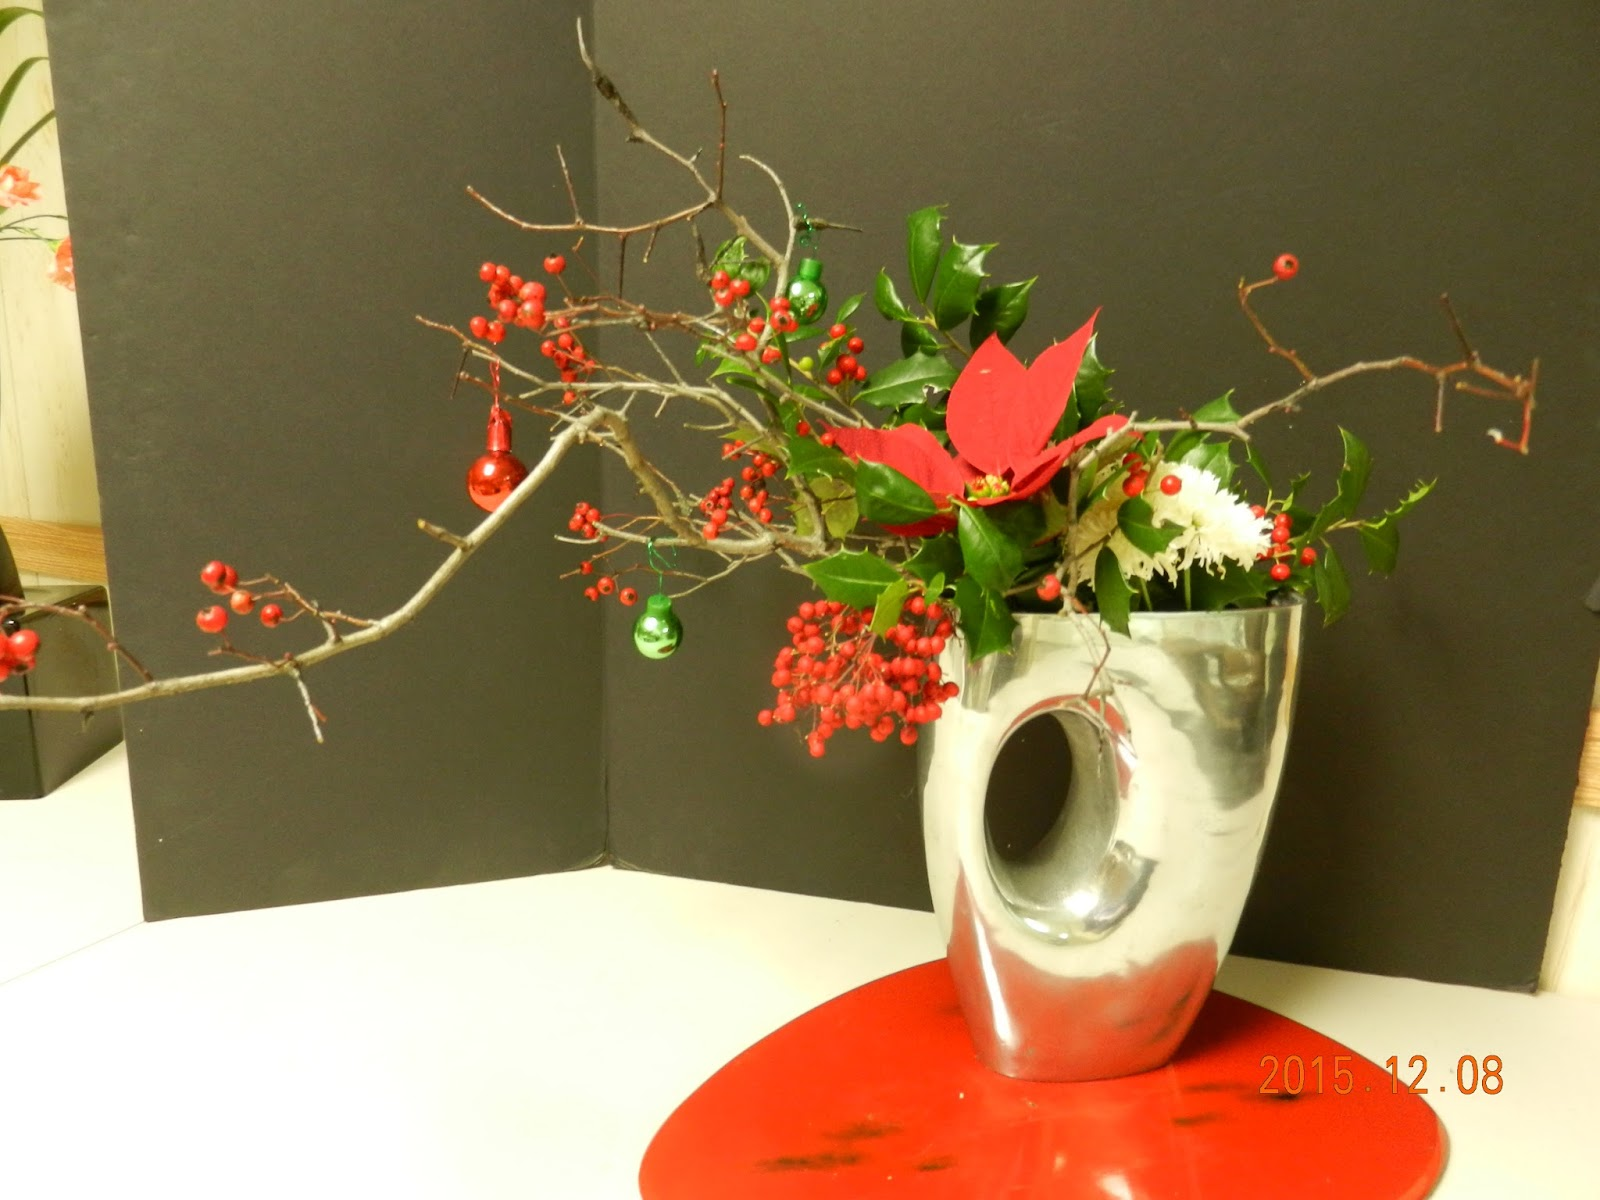 Orchids and ikebana holiday arrangement merry christmas 1 Christmas orchid arrangements